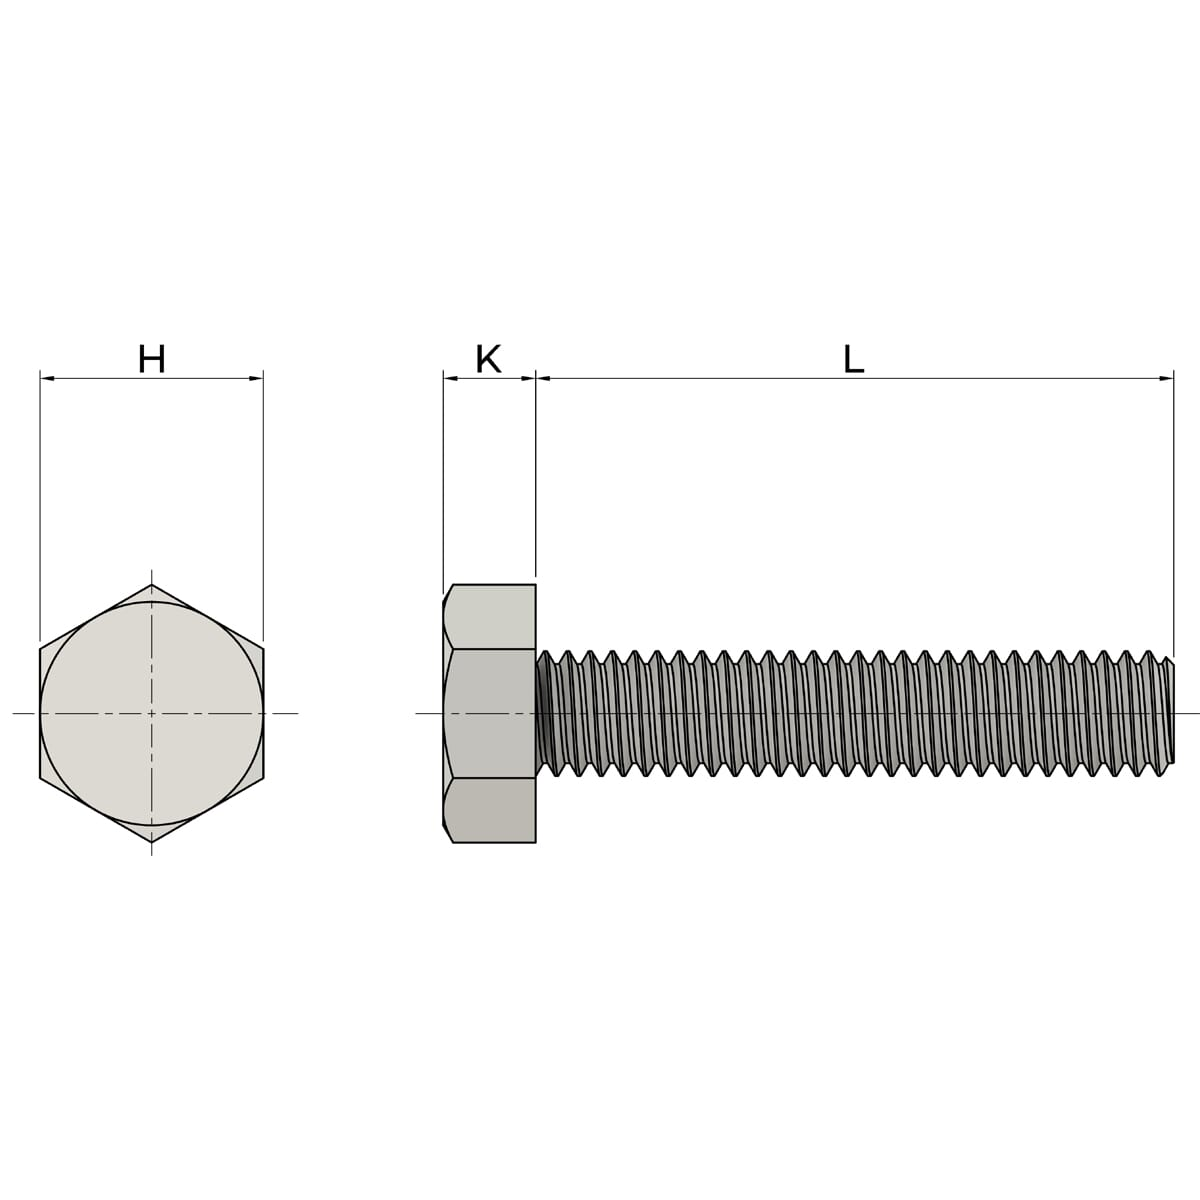 M14 x 60mm Full Thread Hexagon Bolts (DIN 933) - High Tensile Stainless Steel (A4-80) Drawing